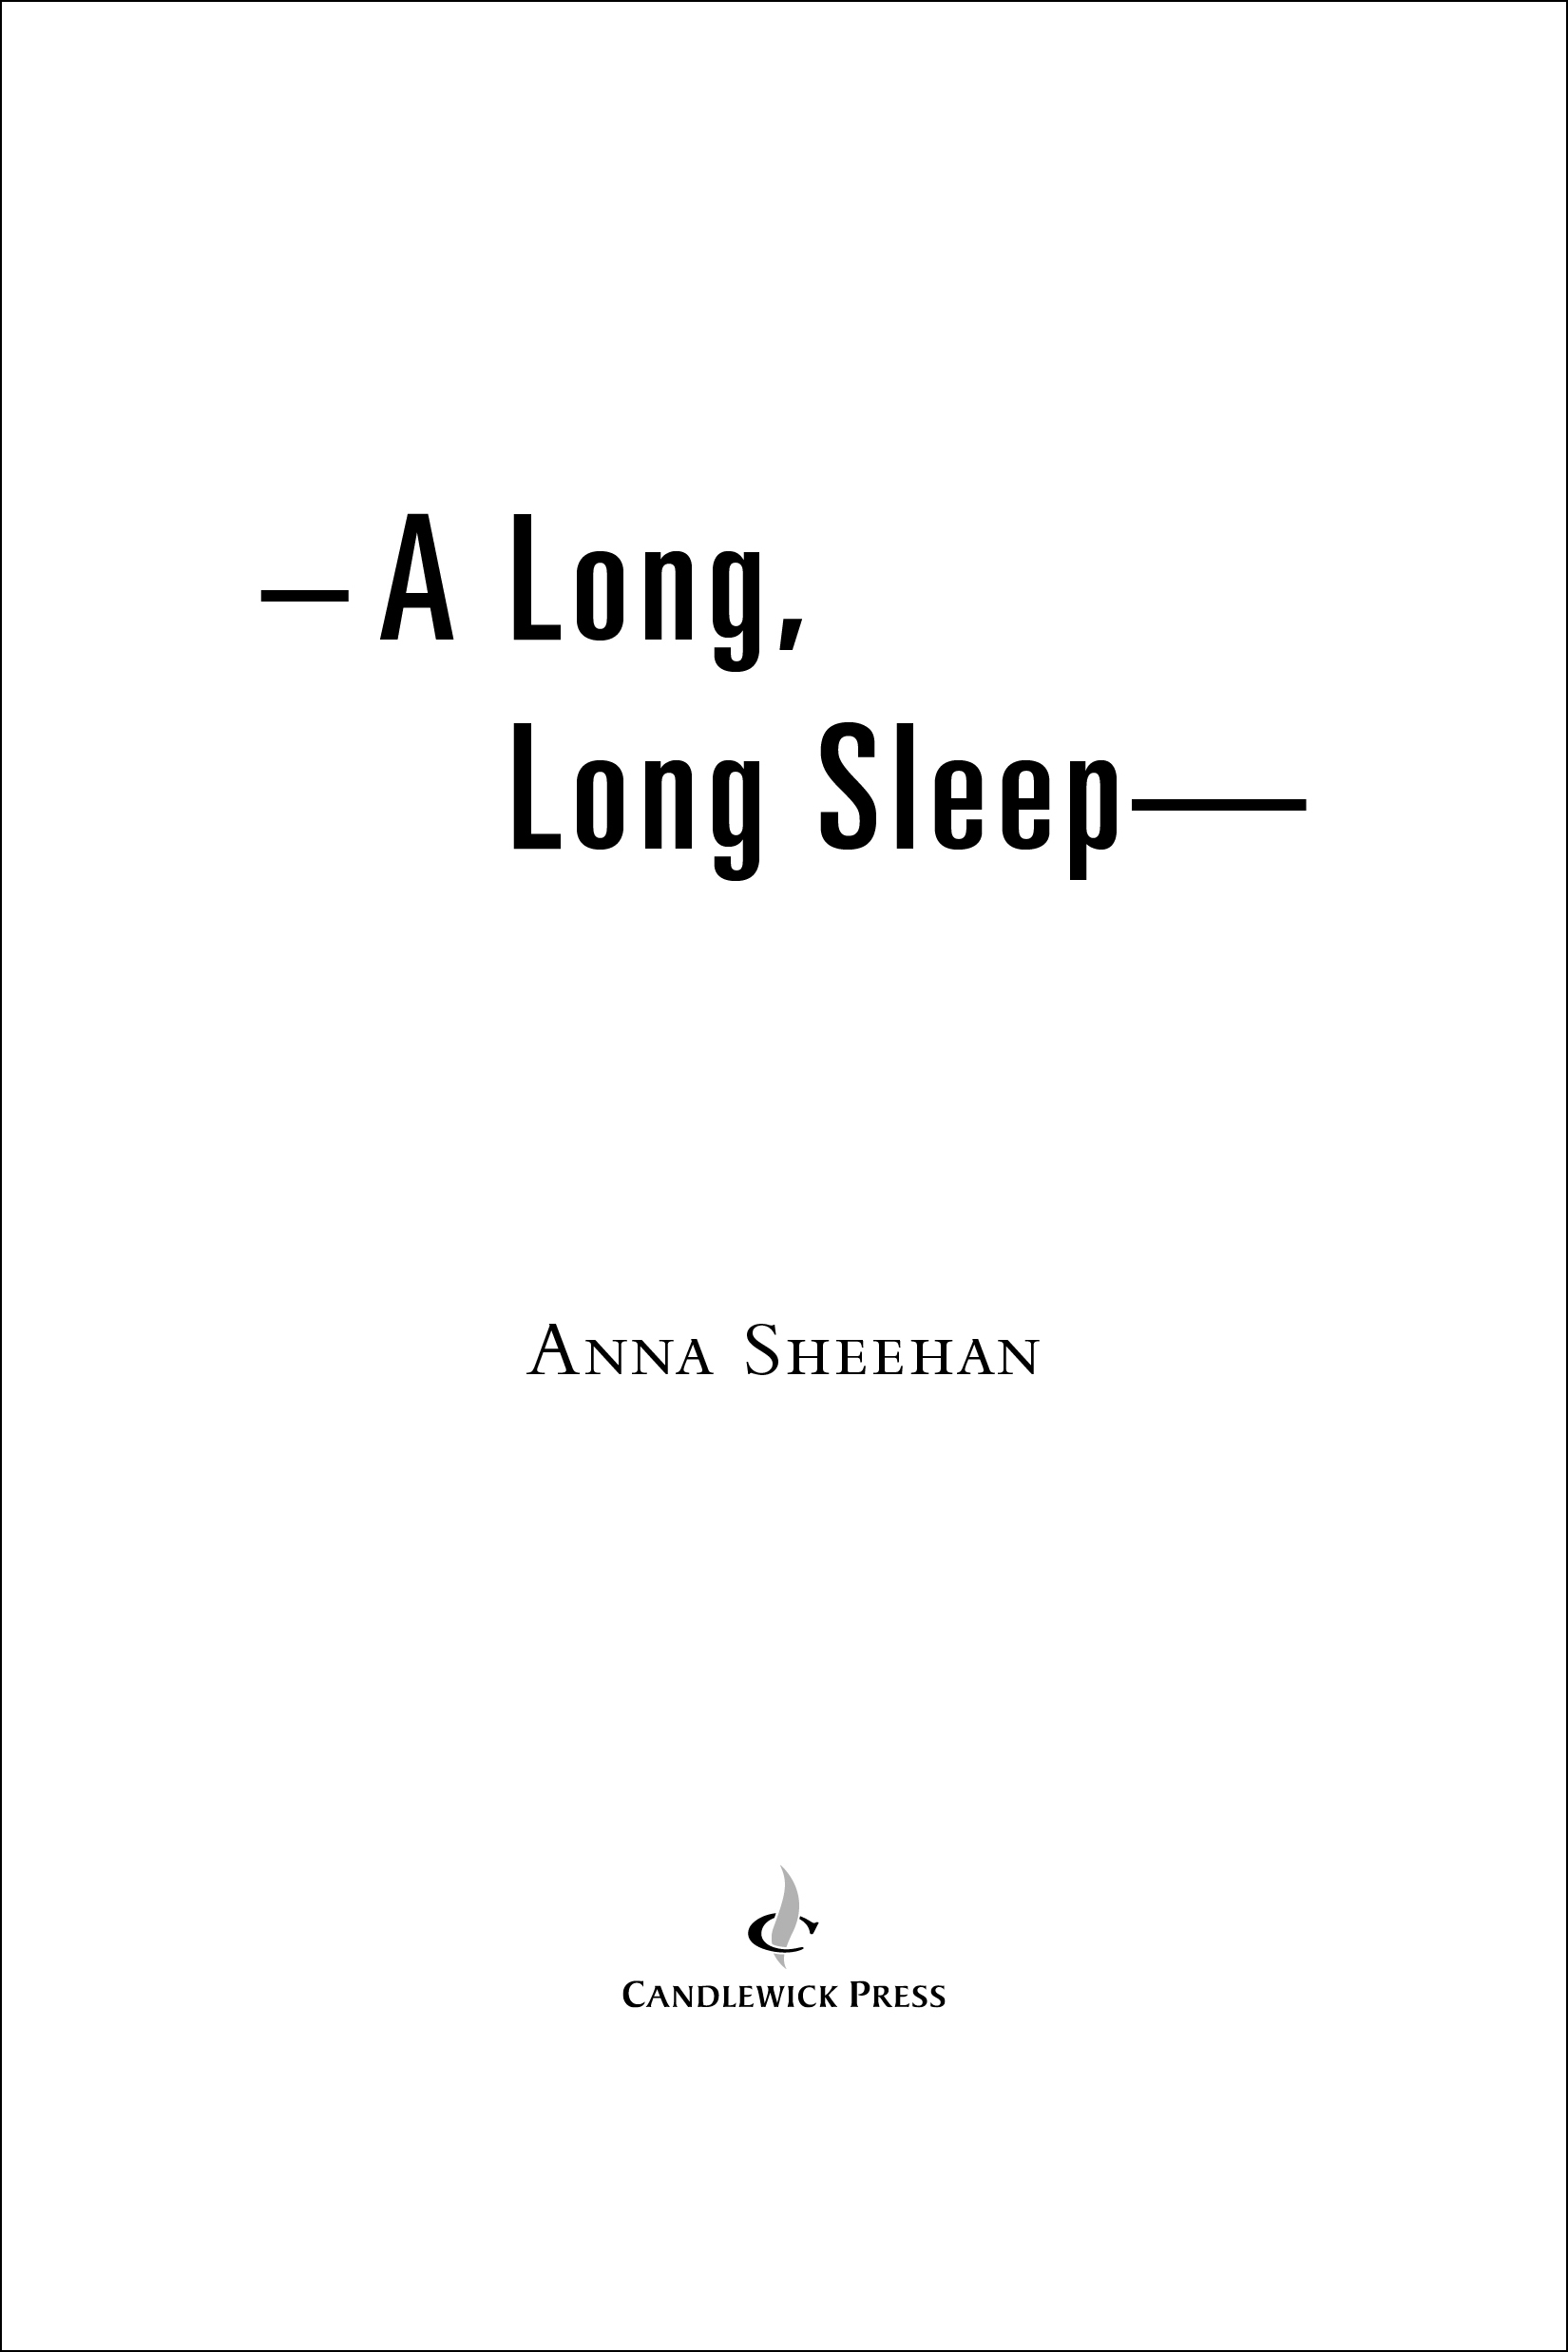 Title page for A LONG, LONG SLEEP